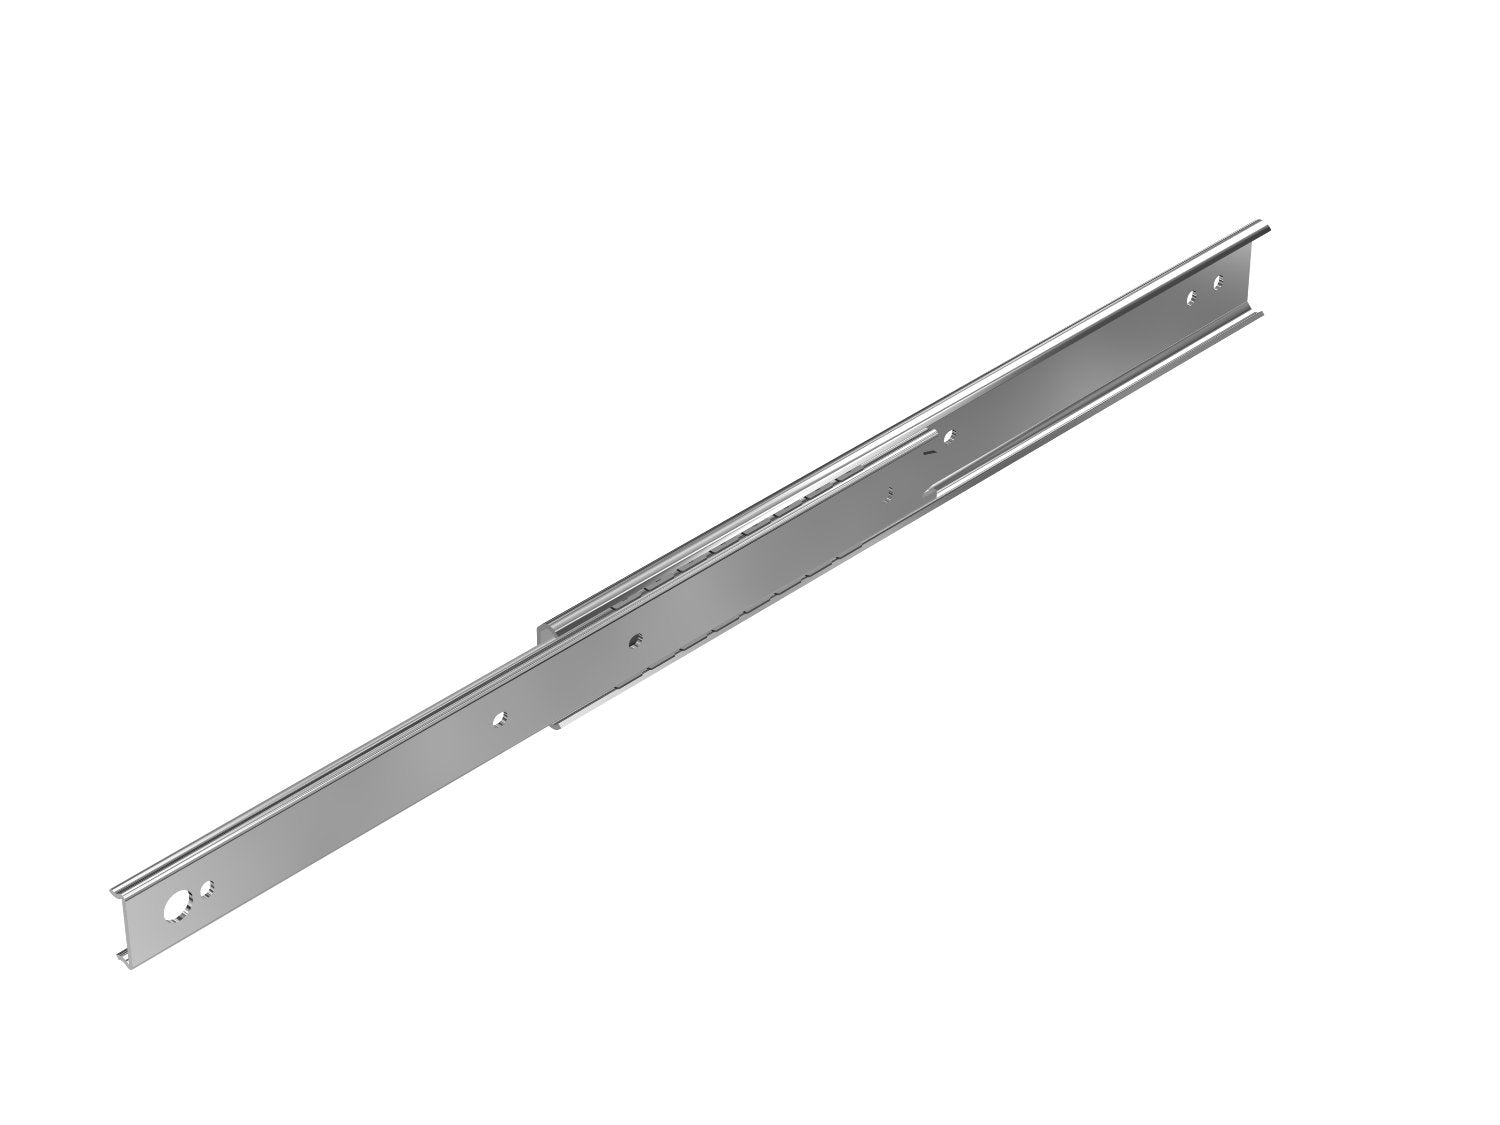 Part Number FBL27-S+400L by THK Slide Rail, type, cross reference and dimension